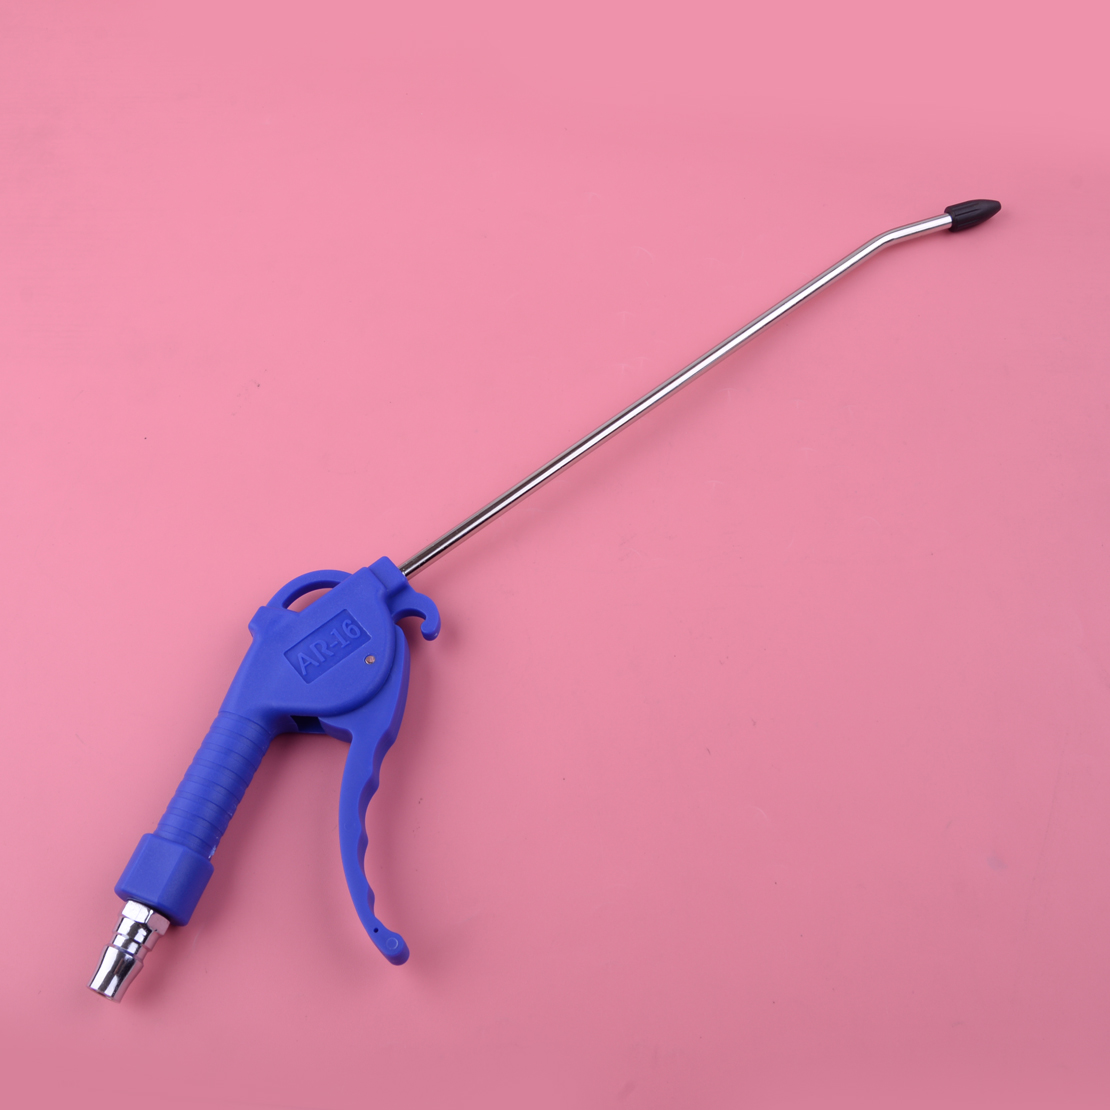 DWCX 2mm Blue Handle Offset Tip Angle Nozzle Duster Cleaner Air Blow Pistol Grip Dust Blower Tool